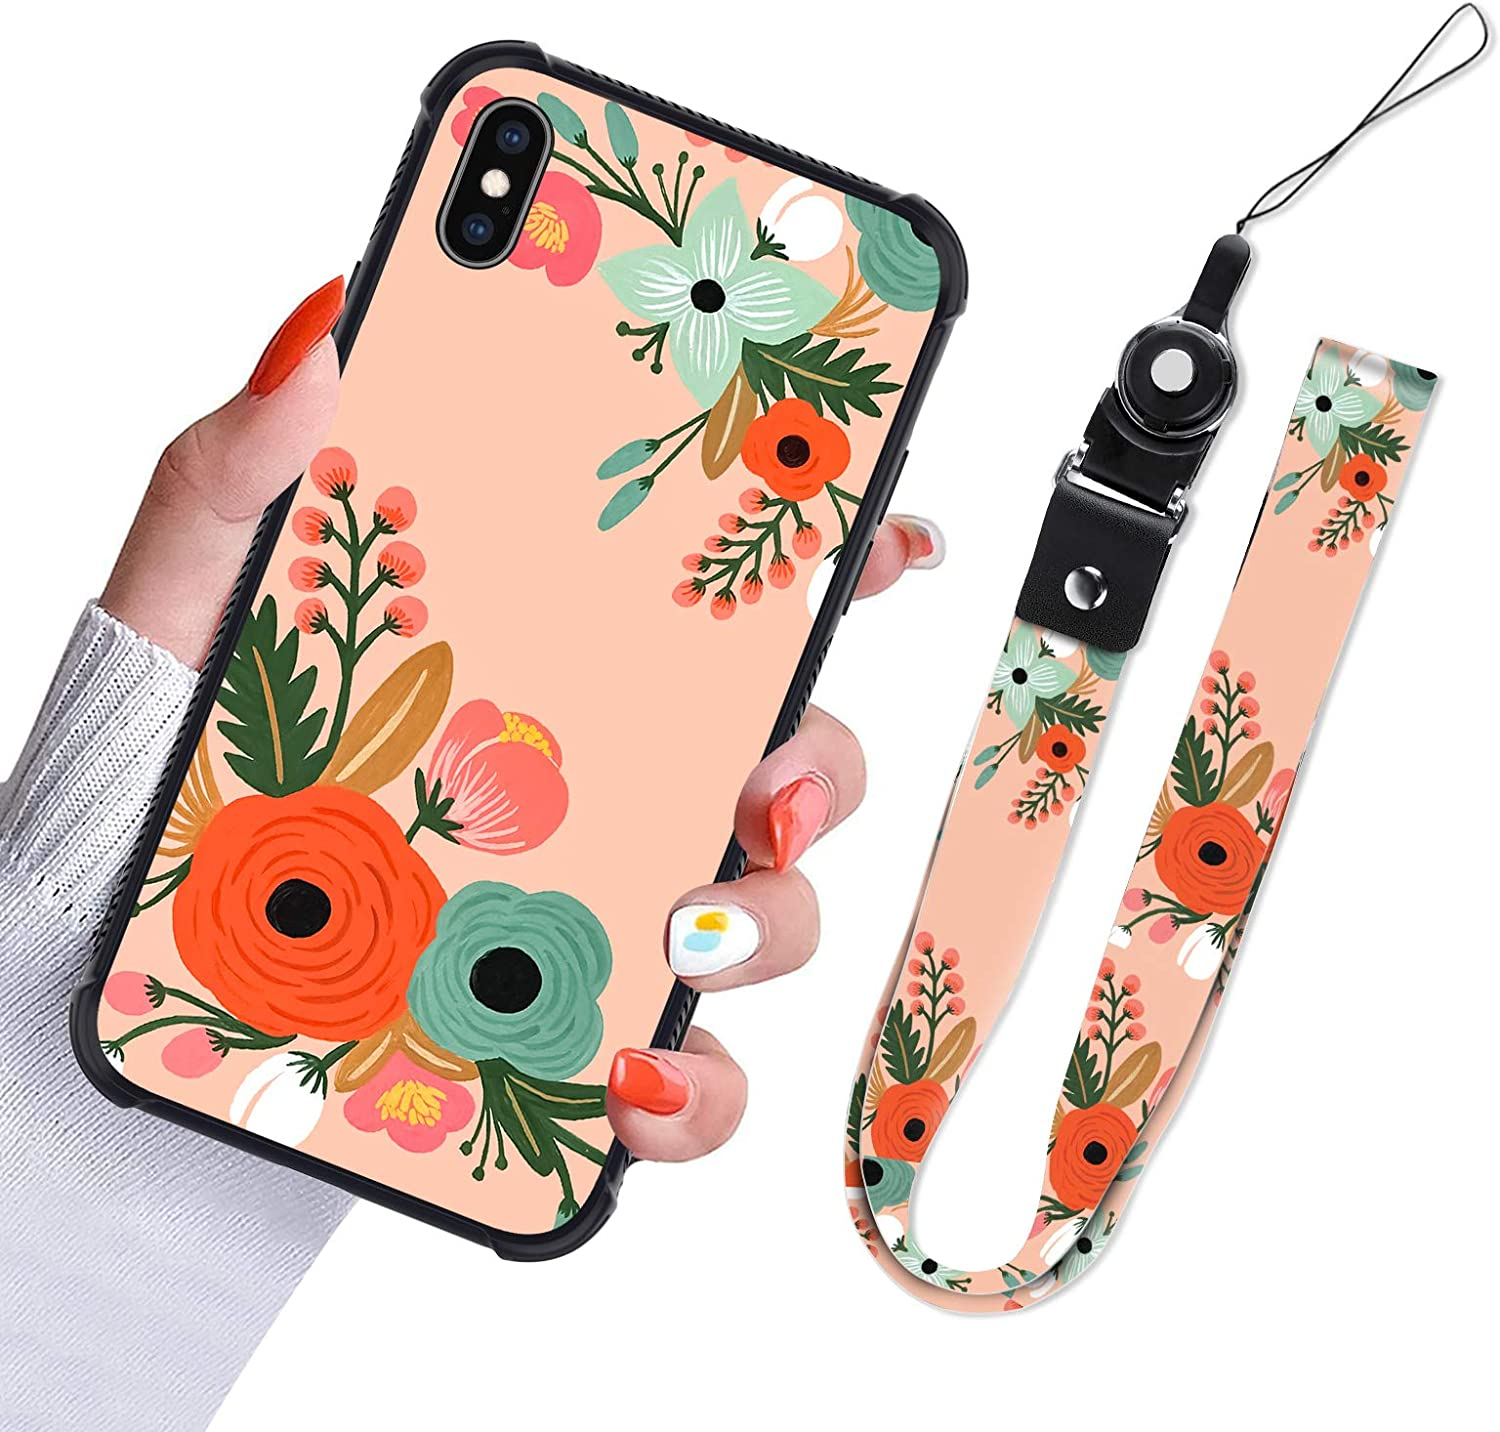 iPhone Xs Max Case Orange Flower Floral Blossom Design Slim Hybrid TPU Bumpers Full Protective Shockproof Phone Cover with Lanyard Neck Strap for Women Girls for iPhone Xs Max 6.5 Inch